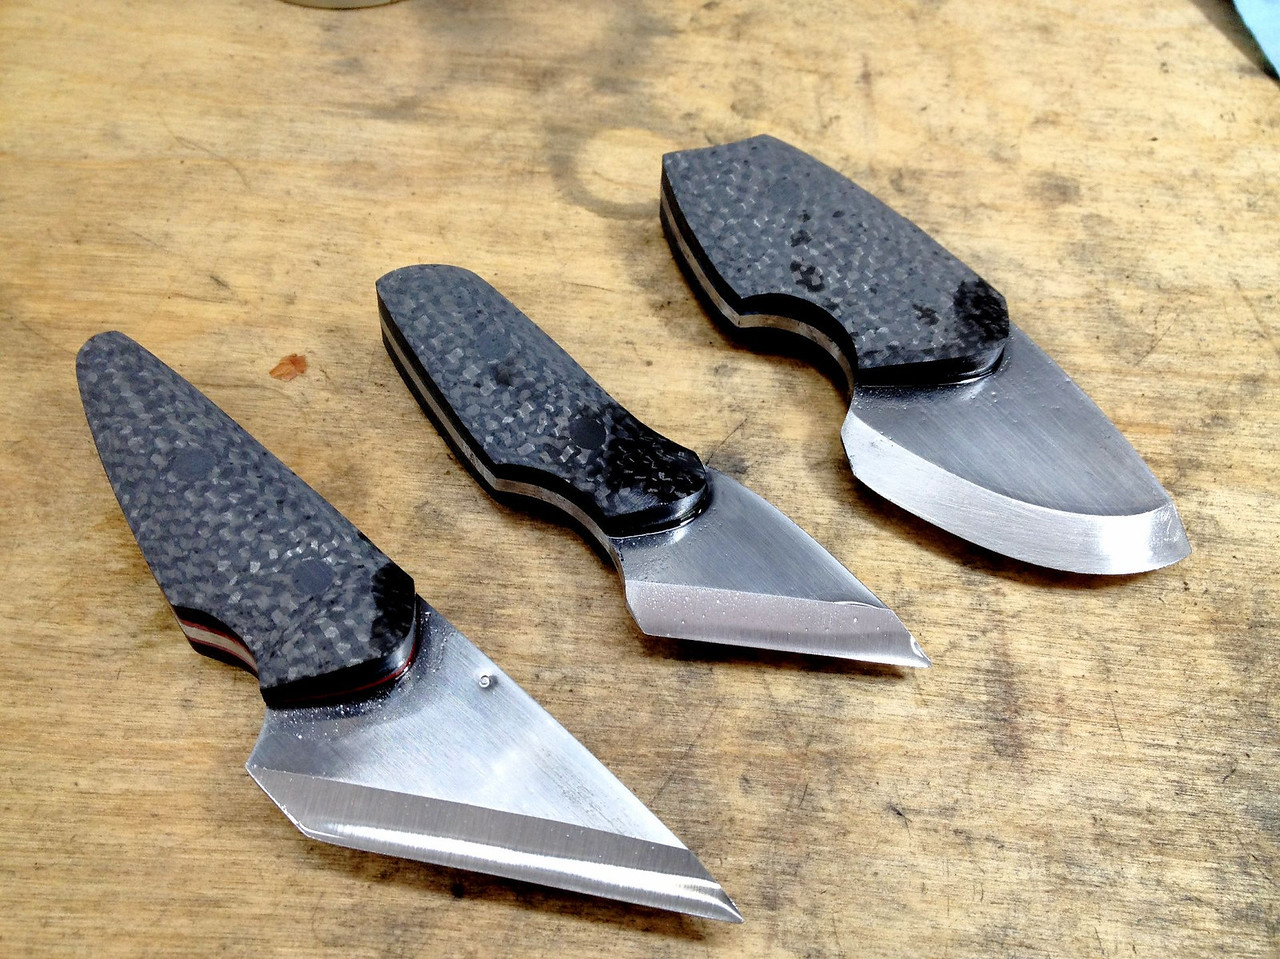 """It was now time to shape the scales.  I started with a slack 120-grit and slowly removed material until things started to feel right.  It quickly became apparent that a finger relief near the front of the scales would improve the ergonomics.<br /> <br /> For the two straight-edged knives, I used the 1"""" small wheel to grind the relief.  For the curved-edge knife, I used the 10"""" wheel to grind the relief.<br /> <br /> I then finished them on the slack belt.  Here they are before going into the tumbler."""